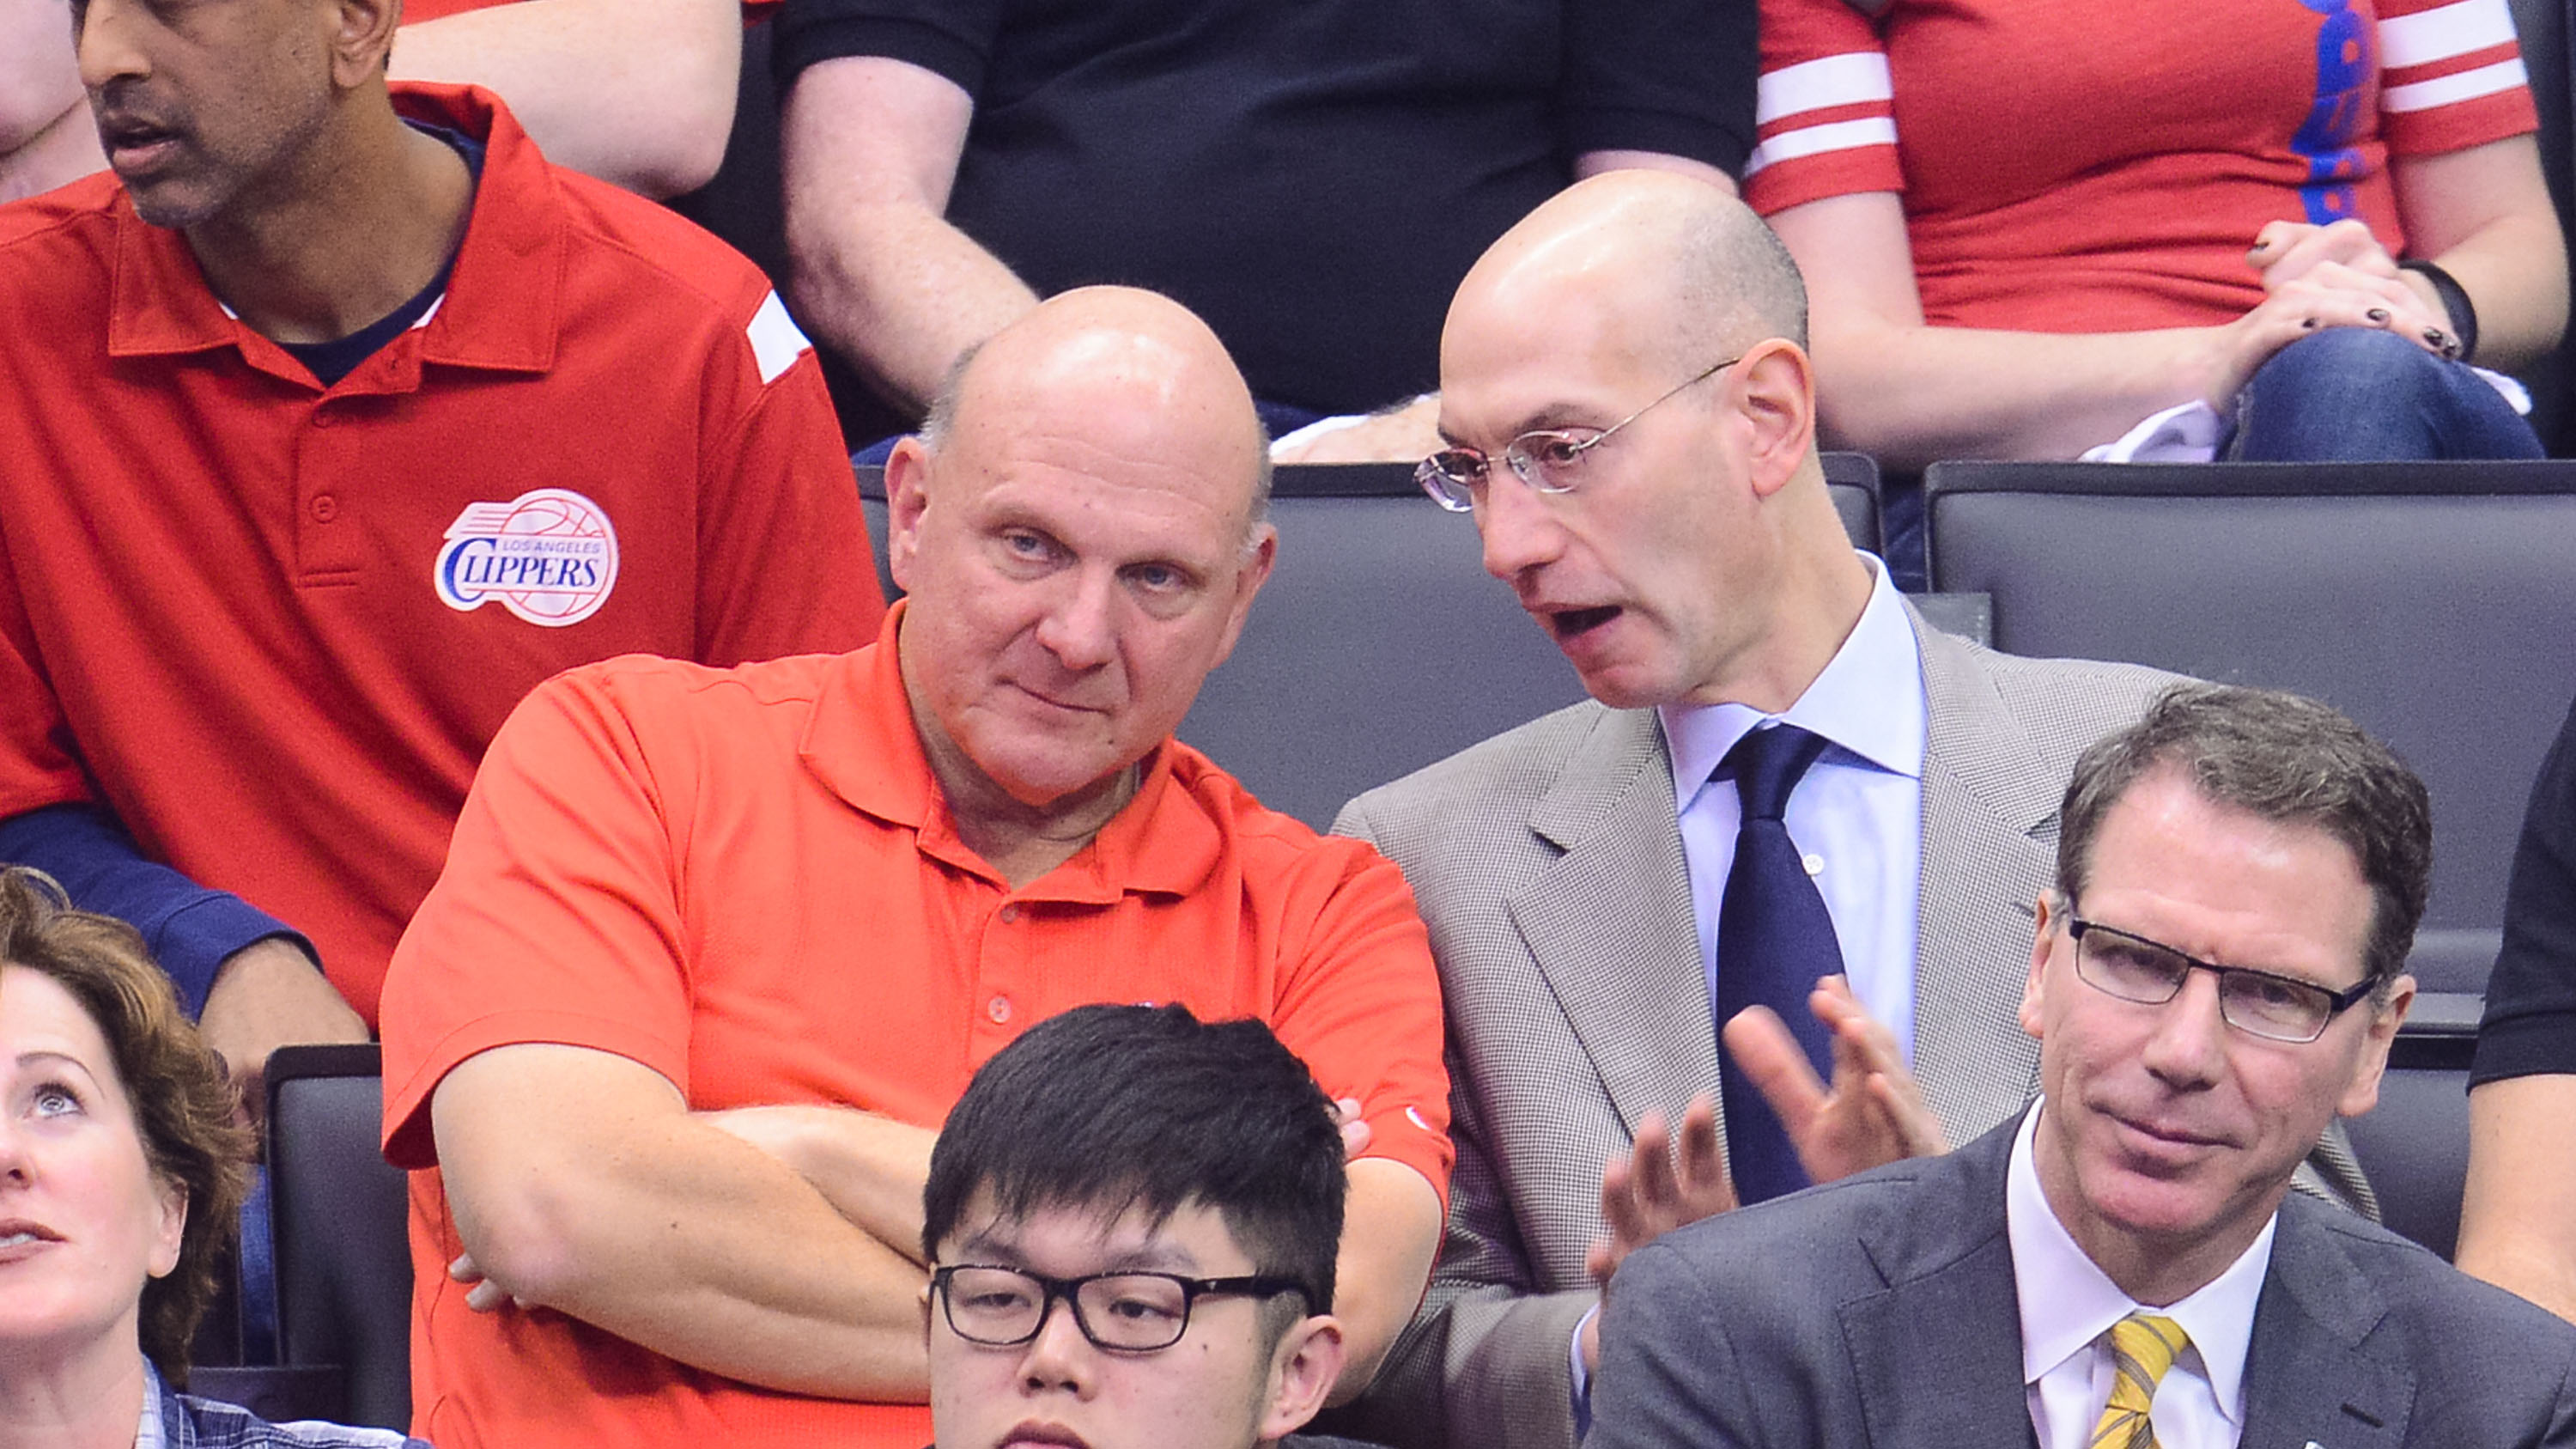 LOS ANGELES, CA - MAY 11:  Steve Ballmer (L) and NBA Commissioner Adam SIlver attends an NBA playoff game between the Oklahoma City Thunder and the Los Angeles Clippers at Staples Center on May 11, 2014 in Los Angeles, California.  (Photo by Noel Vasquez/GC Images)